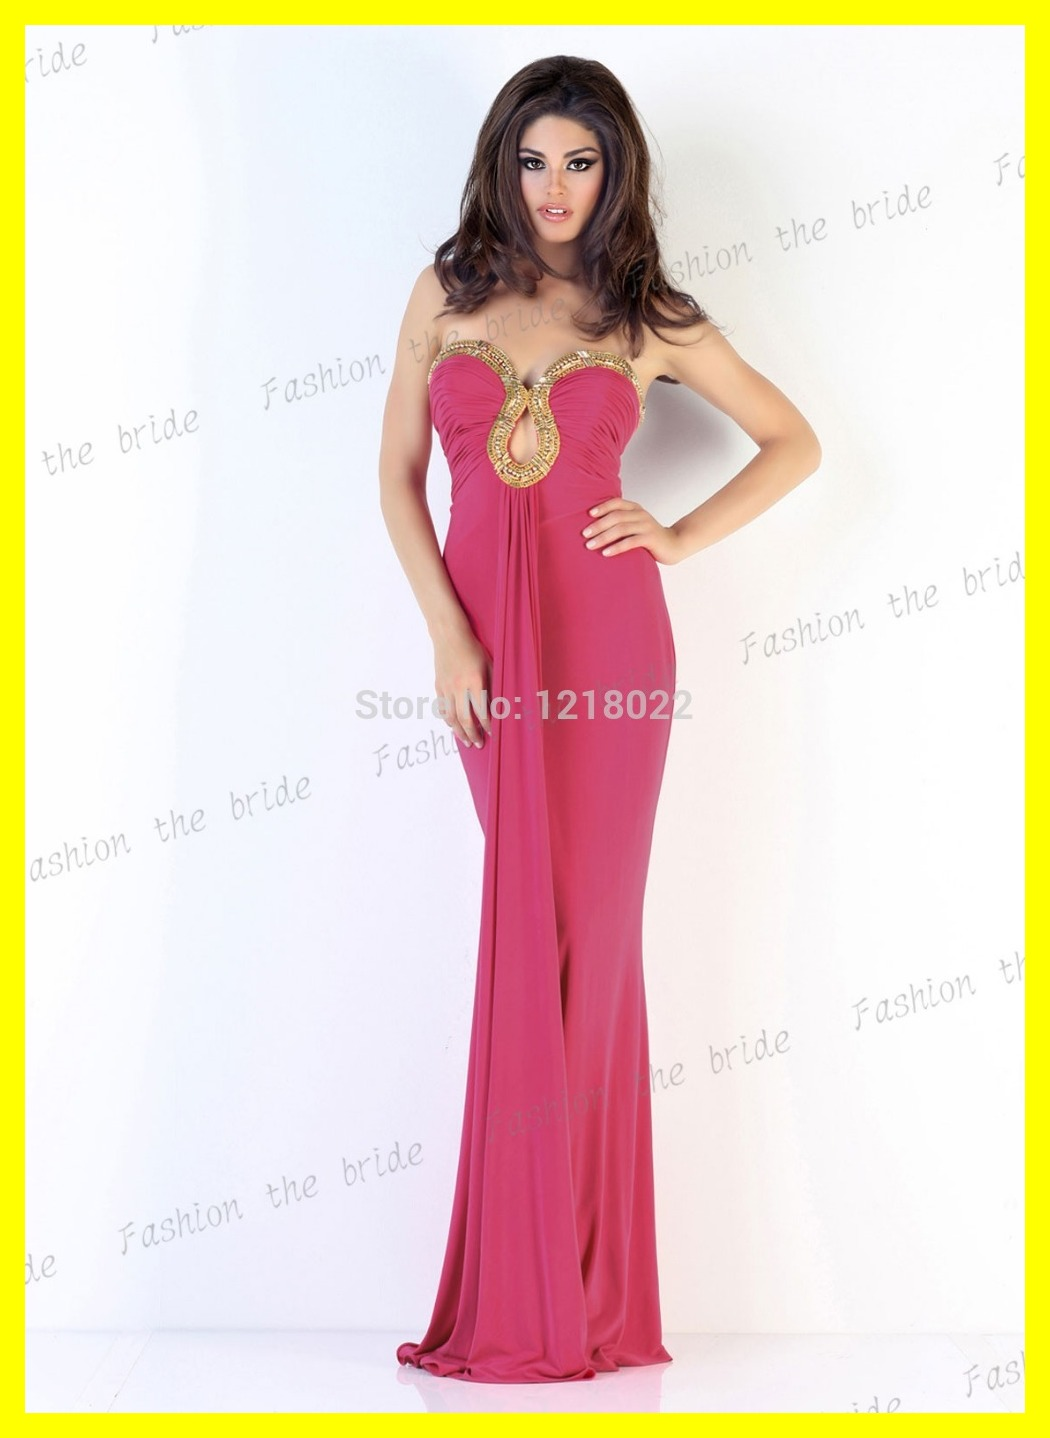 Prom Dresses In Ohio Eligent Prom Dresses